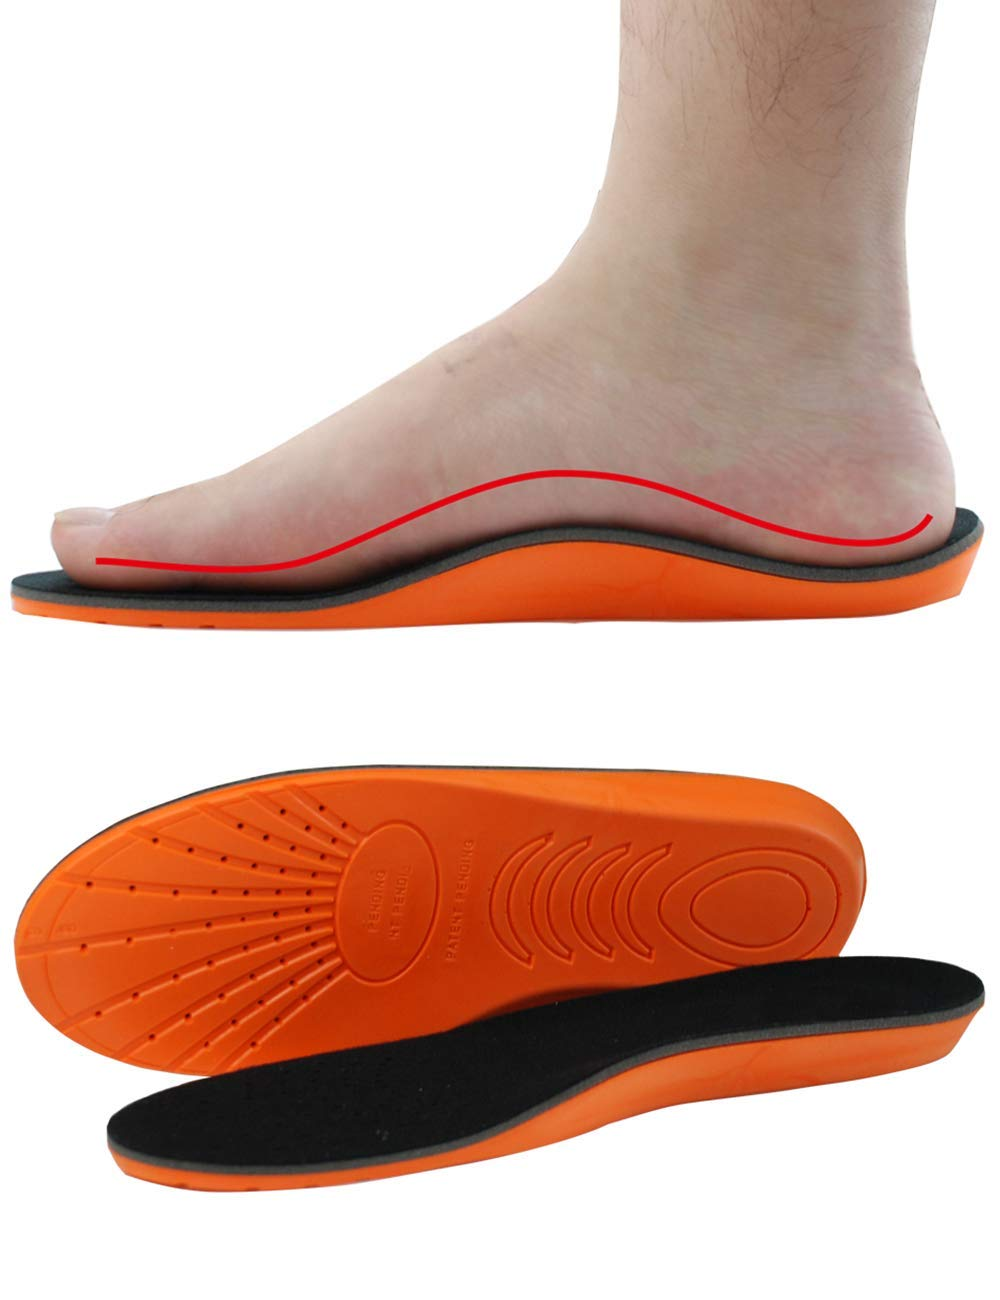 Soft Shoe Insoles Orthopedic Memory Foam Sport Arch Support Insert Soles Pad Y3